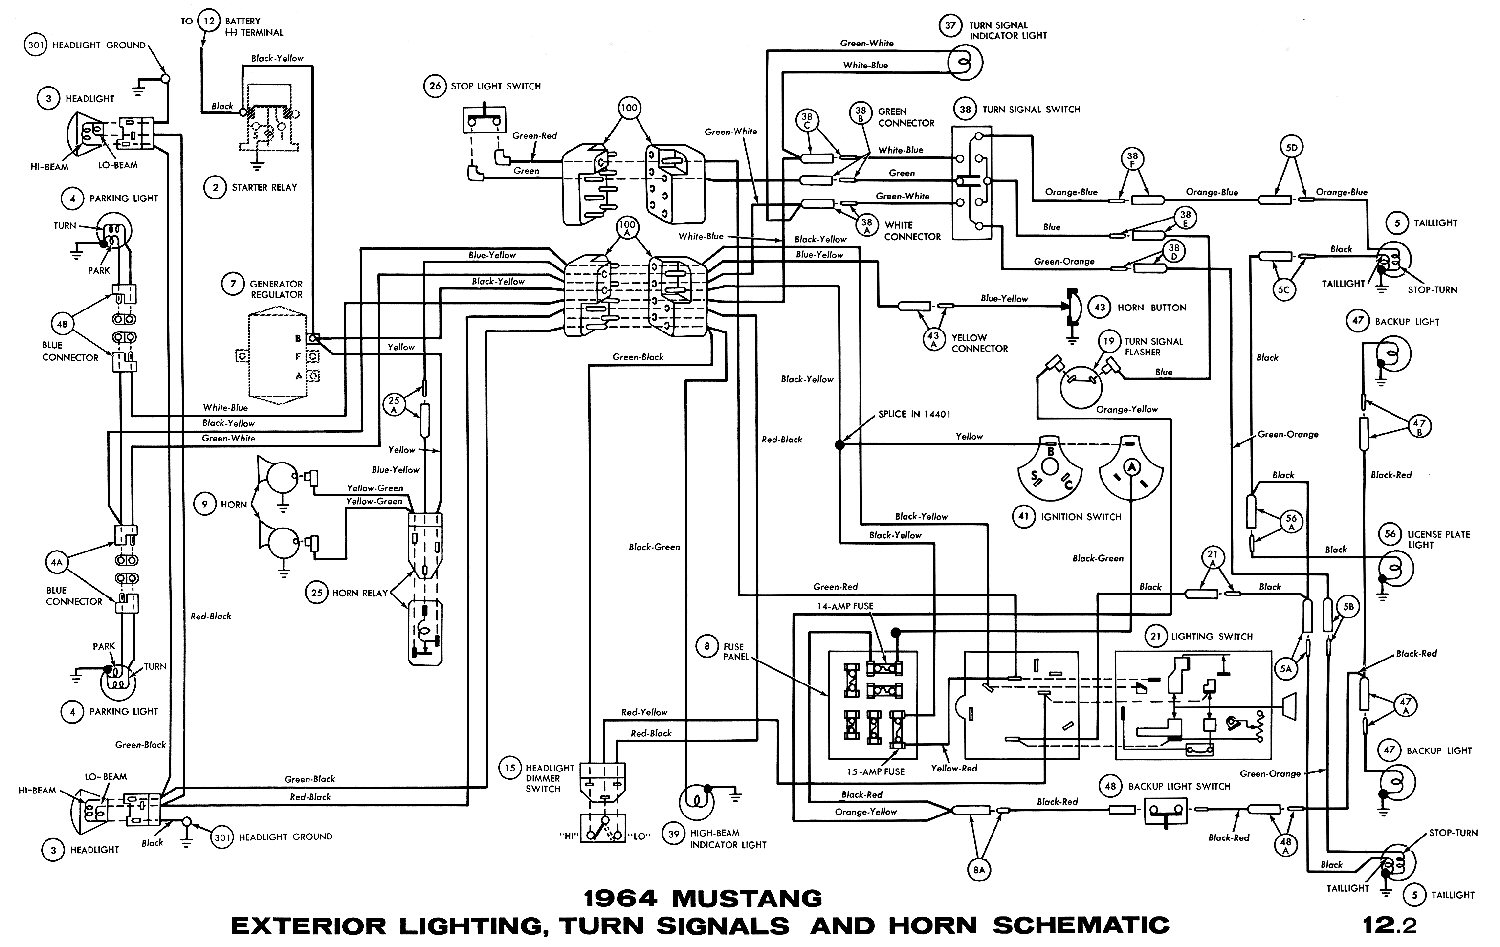 1964i 1964 mustang wiring diagrams average joe restoration 1969 mustang alternator wiring diagram at n-0.co